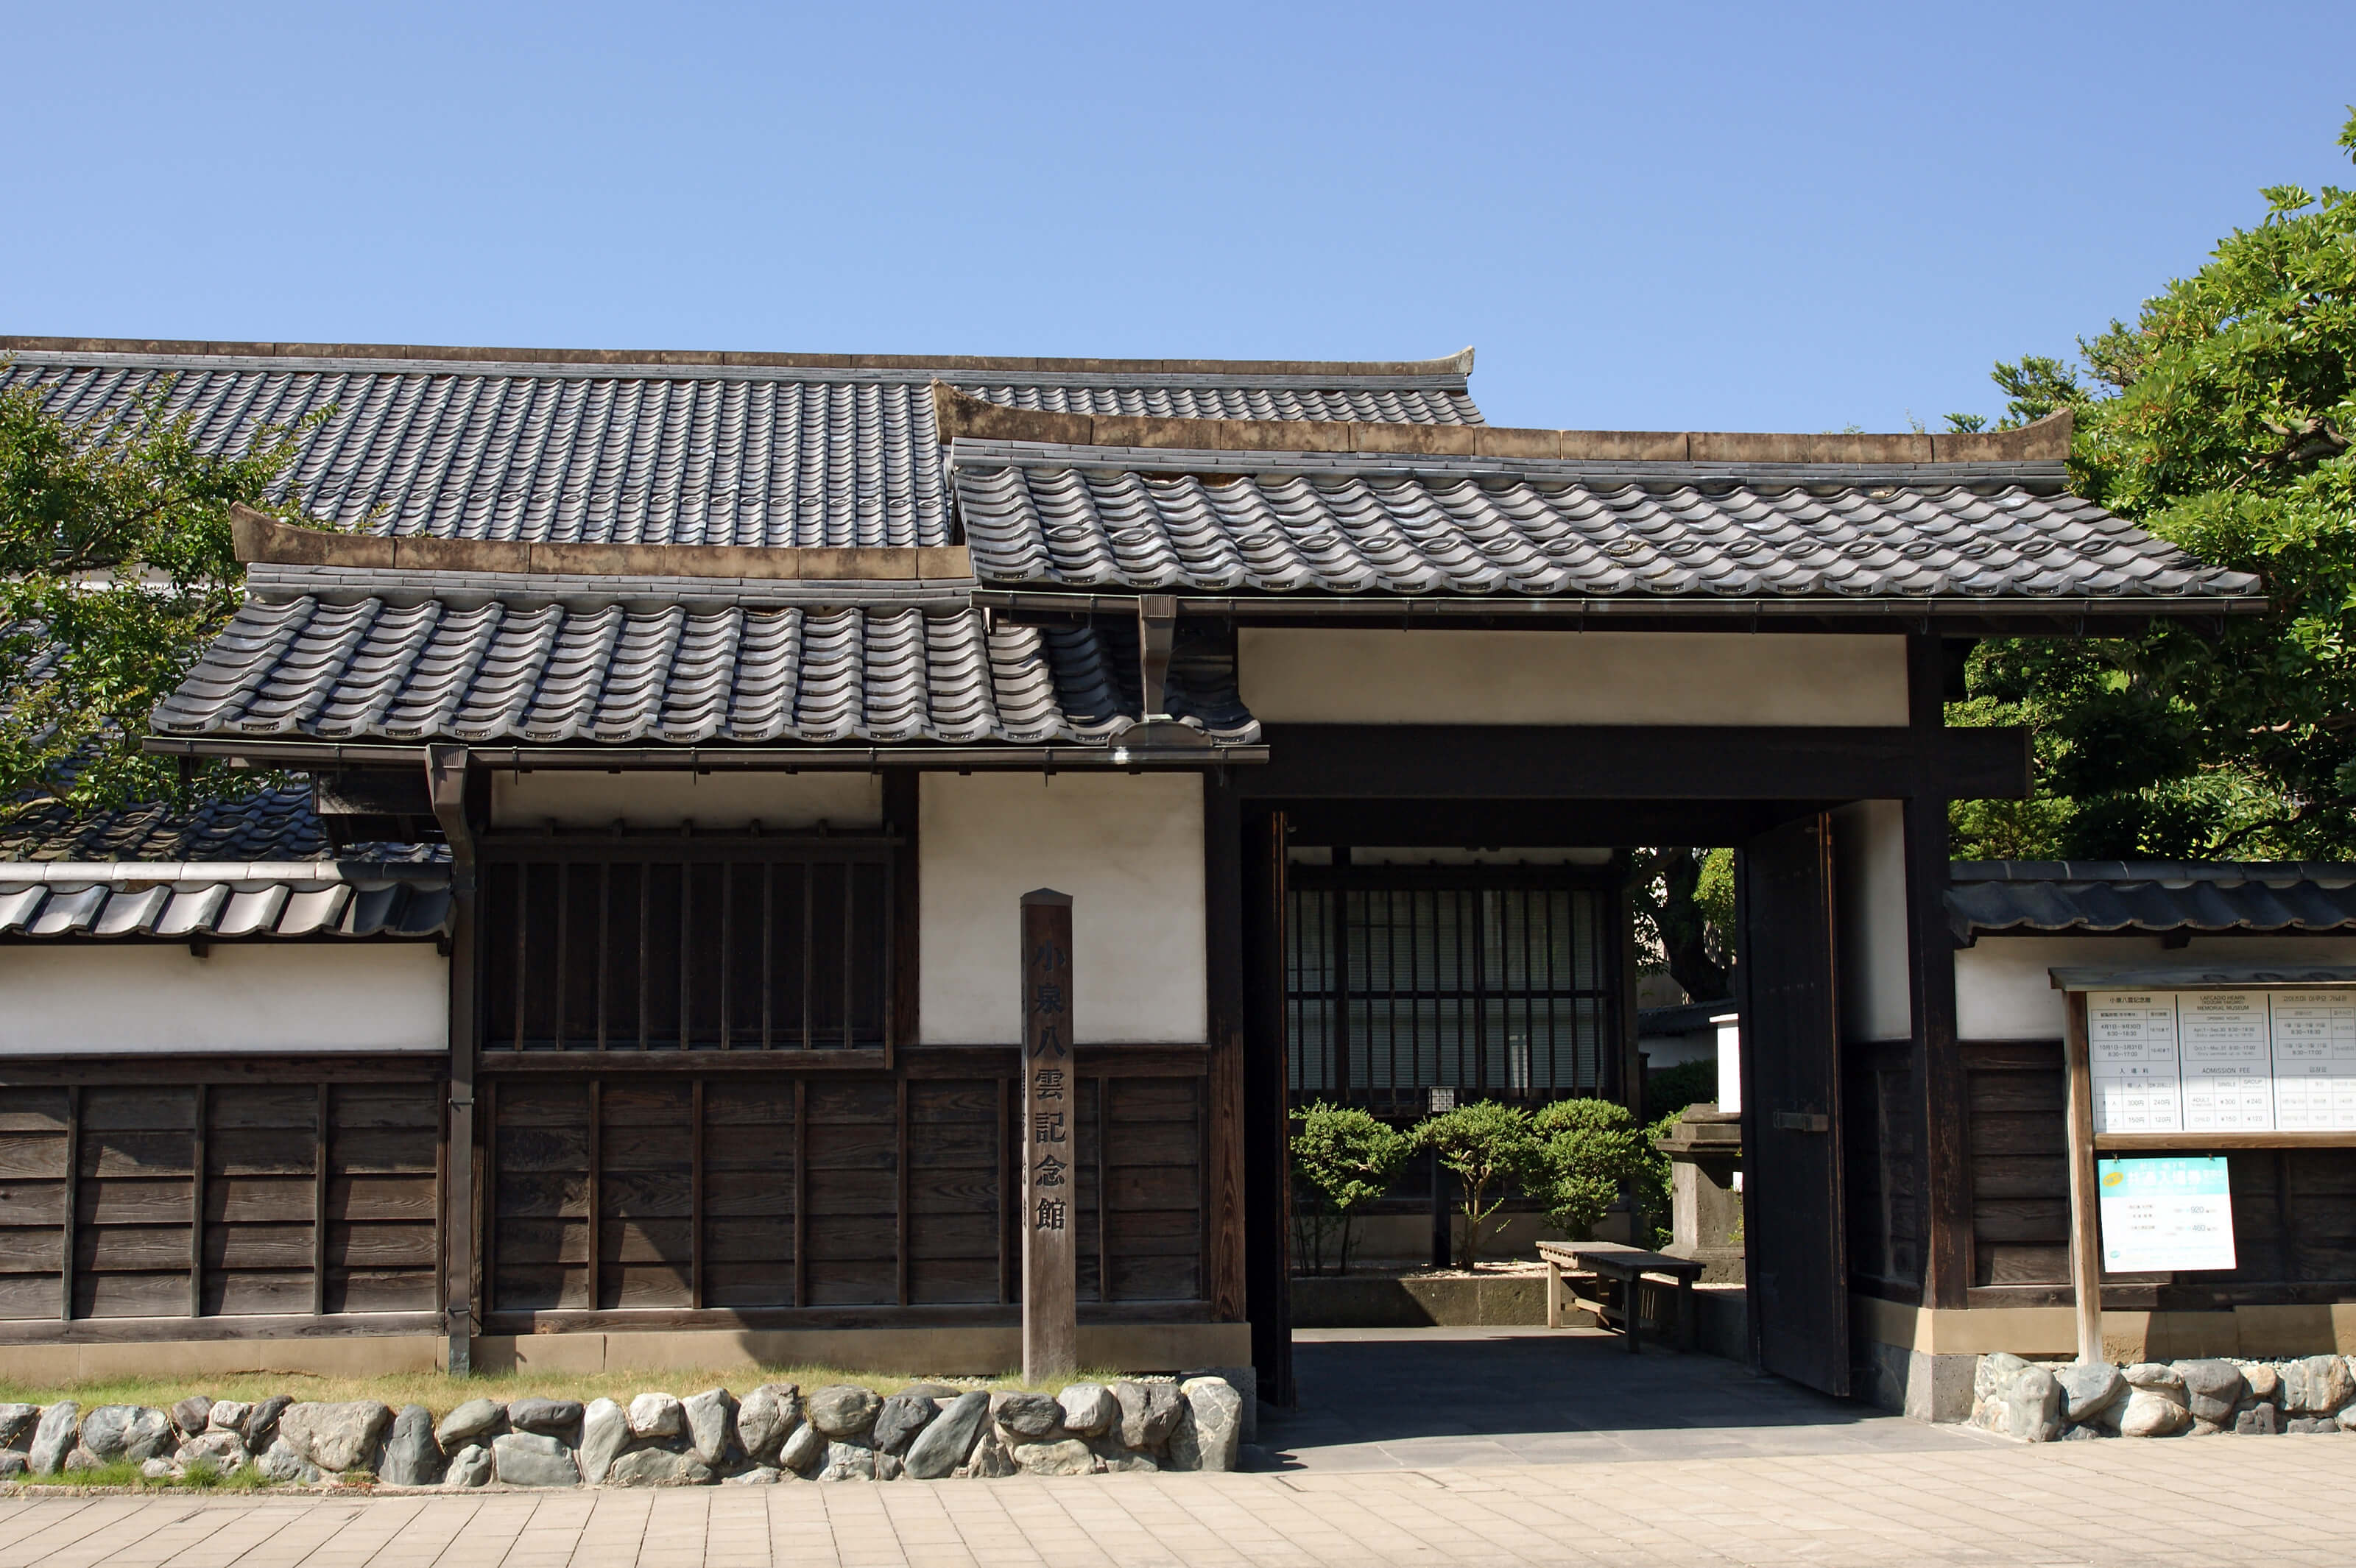 Hearn's former house - youcojapan